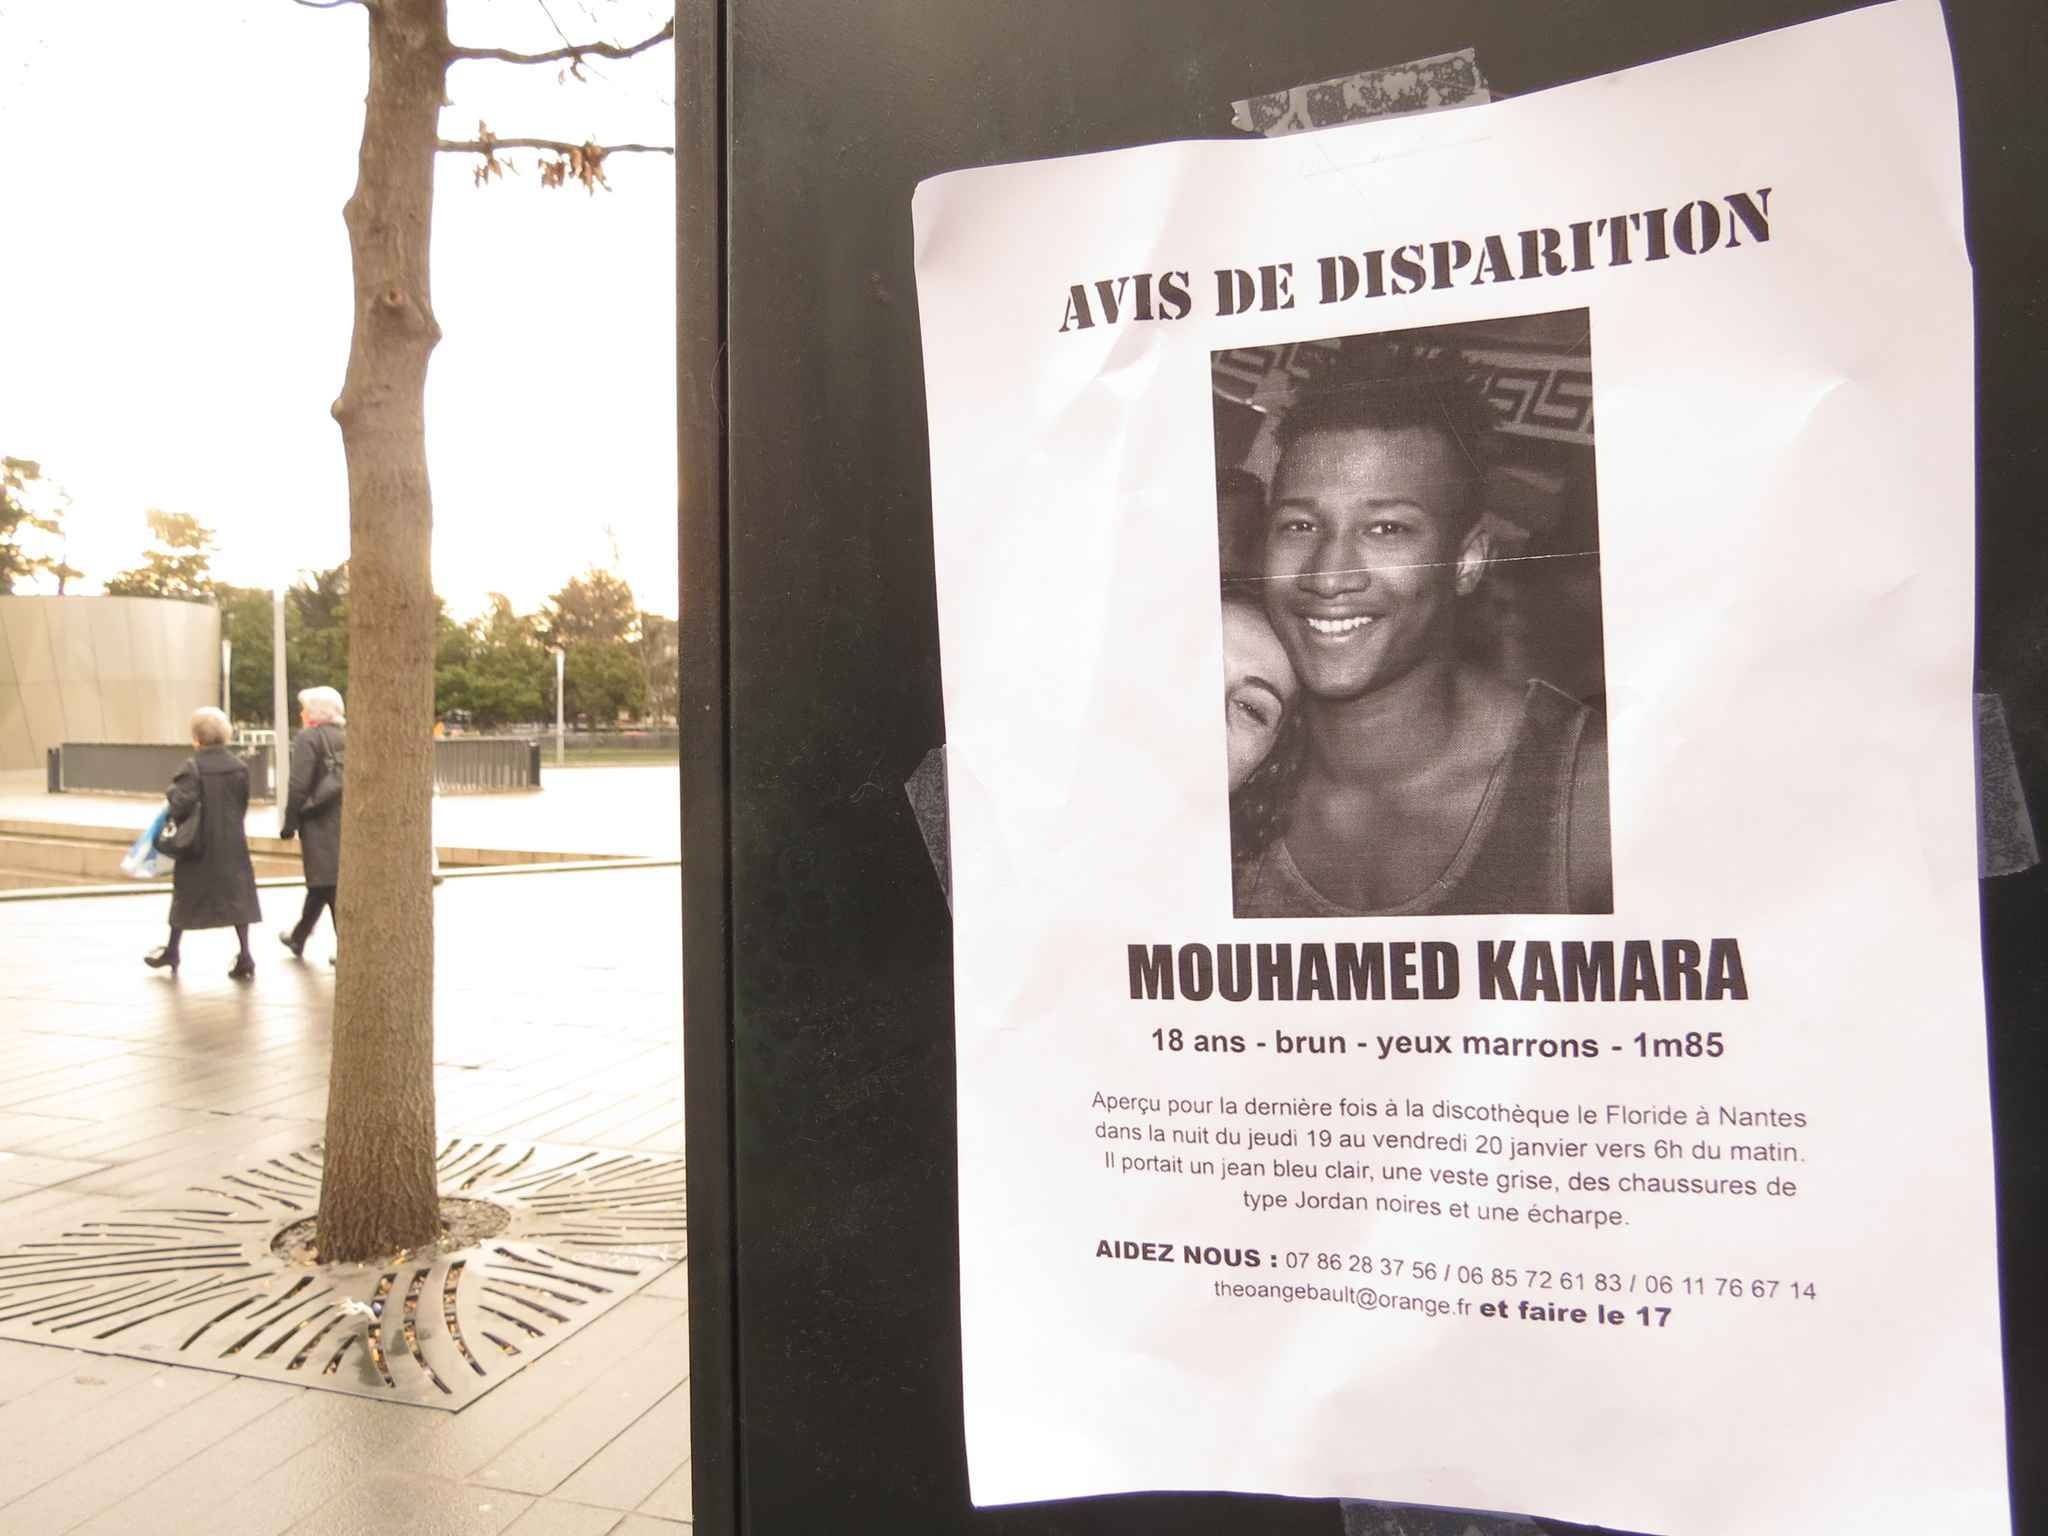 Disparition inquiétante à Nantes de Mouhamed Kamara